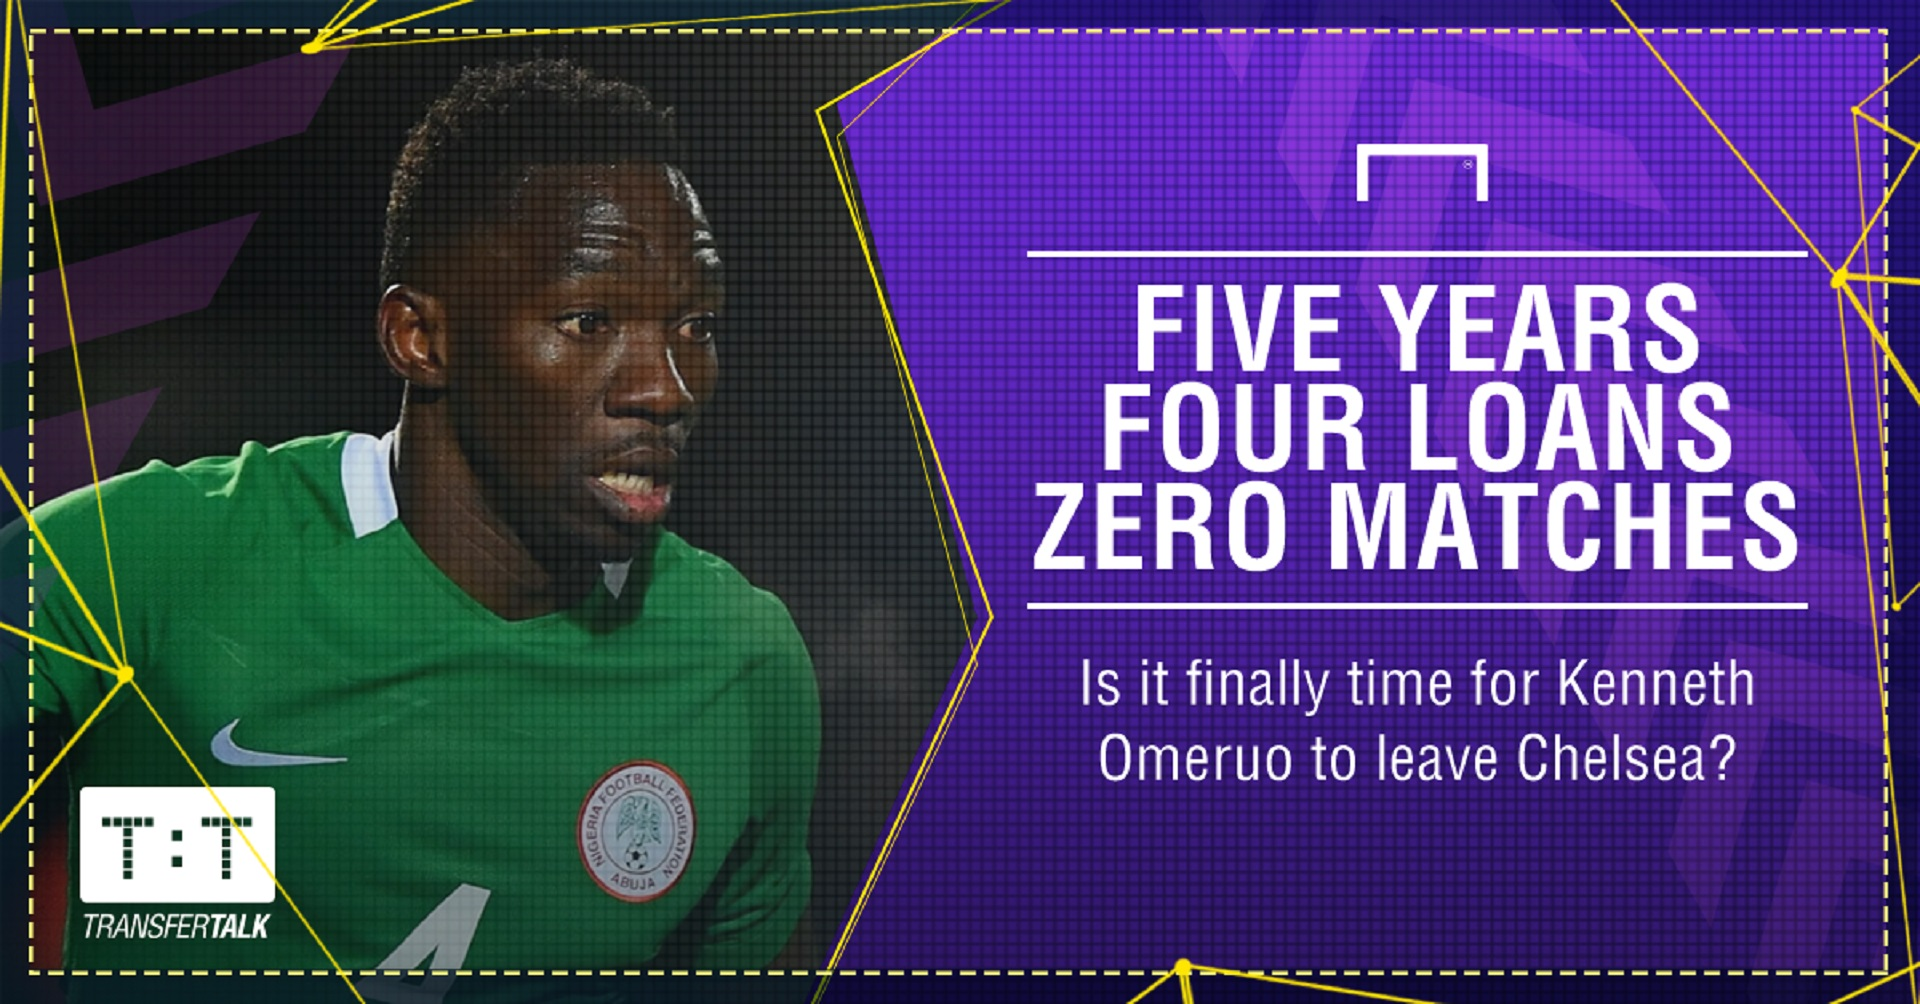 Kenneth Omeruo PS